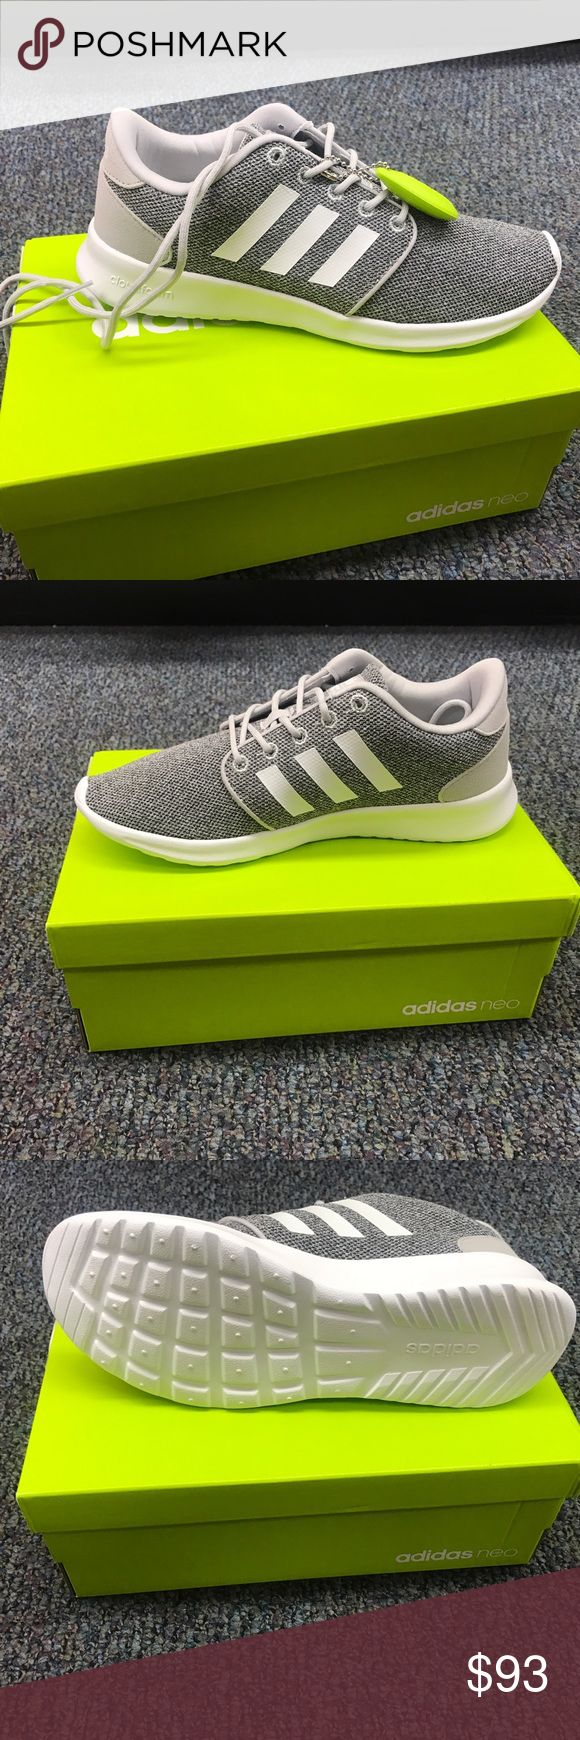 Adidas CloudFoam QT Racer W - Brand: Adidas - Style: Adidas CloudFoam QT Racer W - Condition: Brand New In Original Box - Style Code: AW4313 - Size: Various Sizes  - Color: Gray / White  - Please Purchase With Confidence! - All shoes are acquired from Adidas or certified retailers of Adidas ONLY! - We only work with 100% authentic shoes of A+ quality. - PLEASE CONTACT US WITH ANY QUESTIONS OR CONCERNS REGARDING THIS PRODUCT. adidas Shoes Sneakers